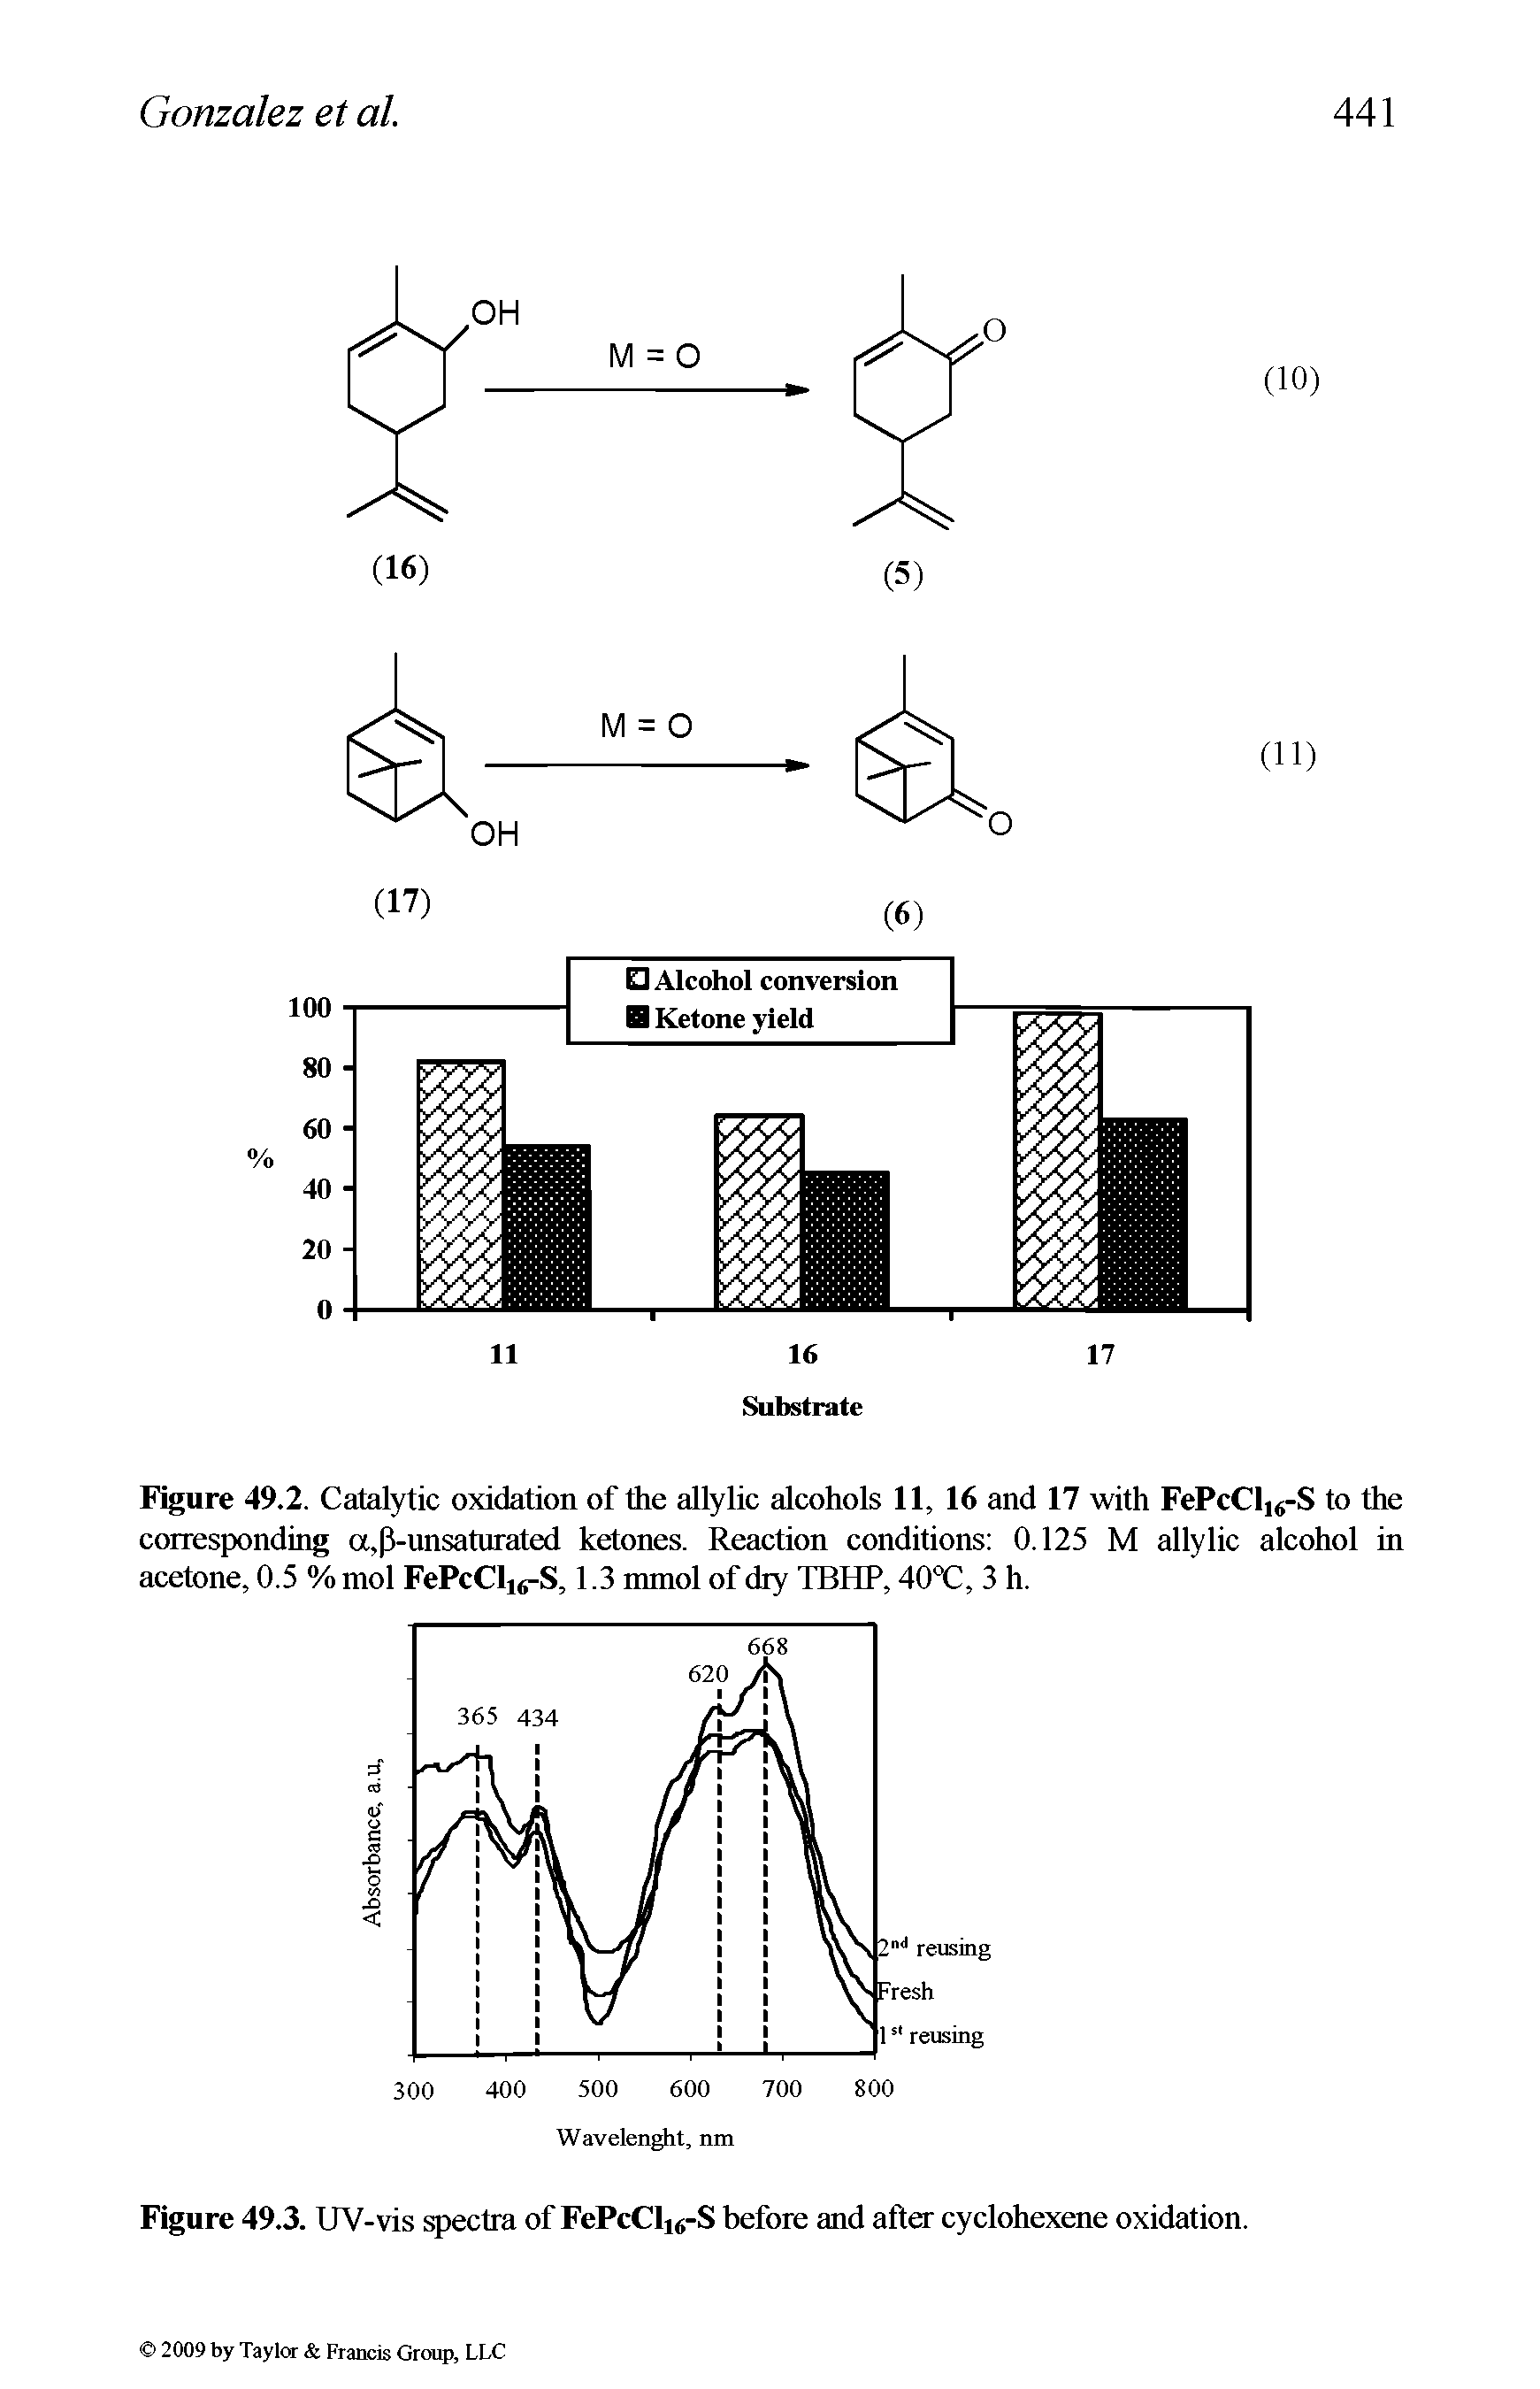 Figure 49.2. Catalytic oxidation of the allylic alcohols 11, 16 and 17 with FePcCli -S to the corresponding a, 5-unsaturated ketones. Reaction conditions 0.125 M allylic alcohol in acetone, 0.5 % mol FePcClis-S, 1.3 mmol of dry TBHP, 40T, 3 h.